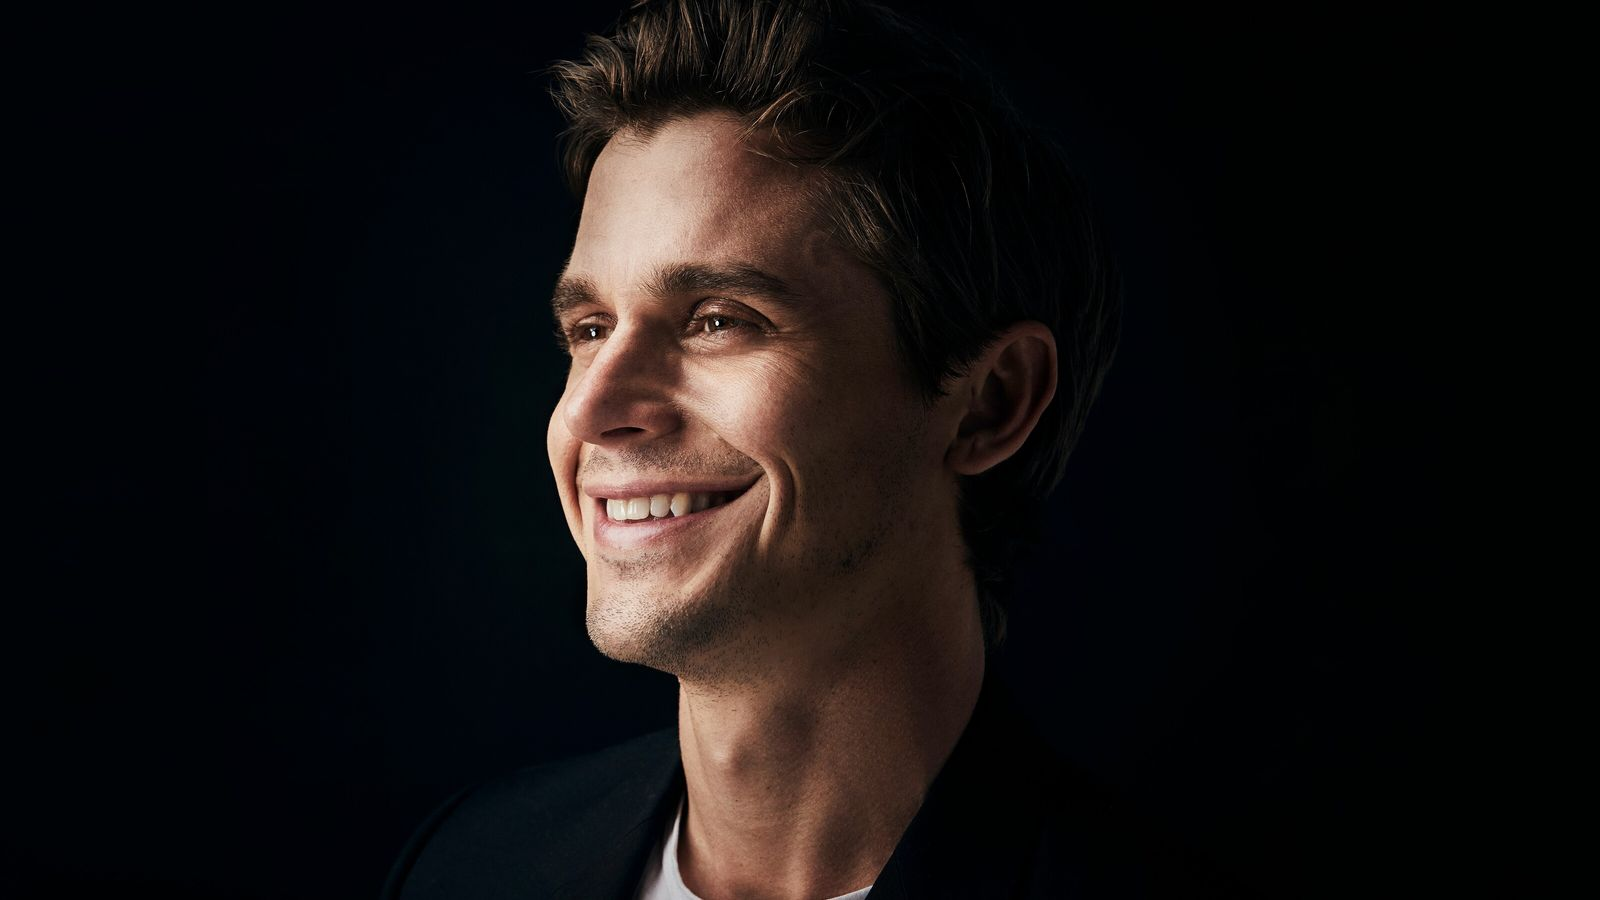 Antoni is the food and wine expert on the popular Netflix series Queer Eye and author of ...